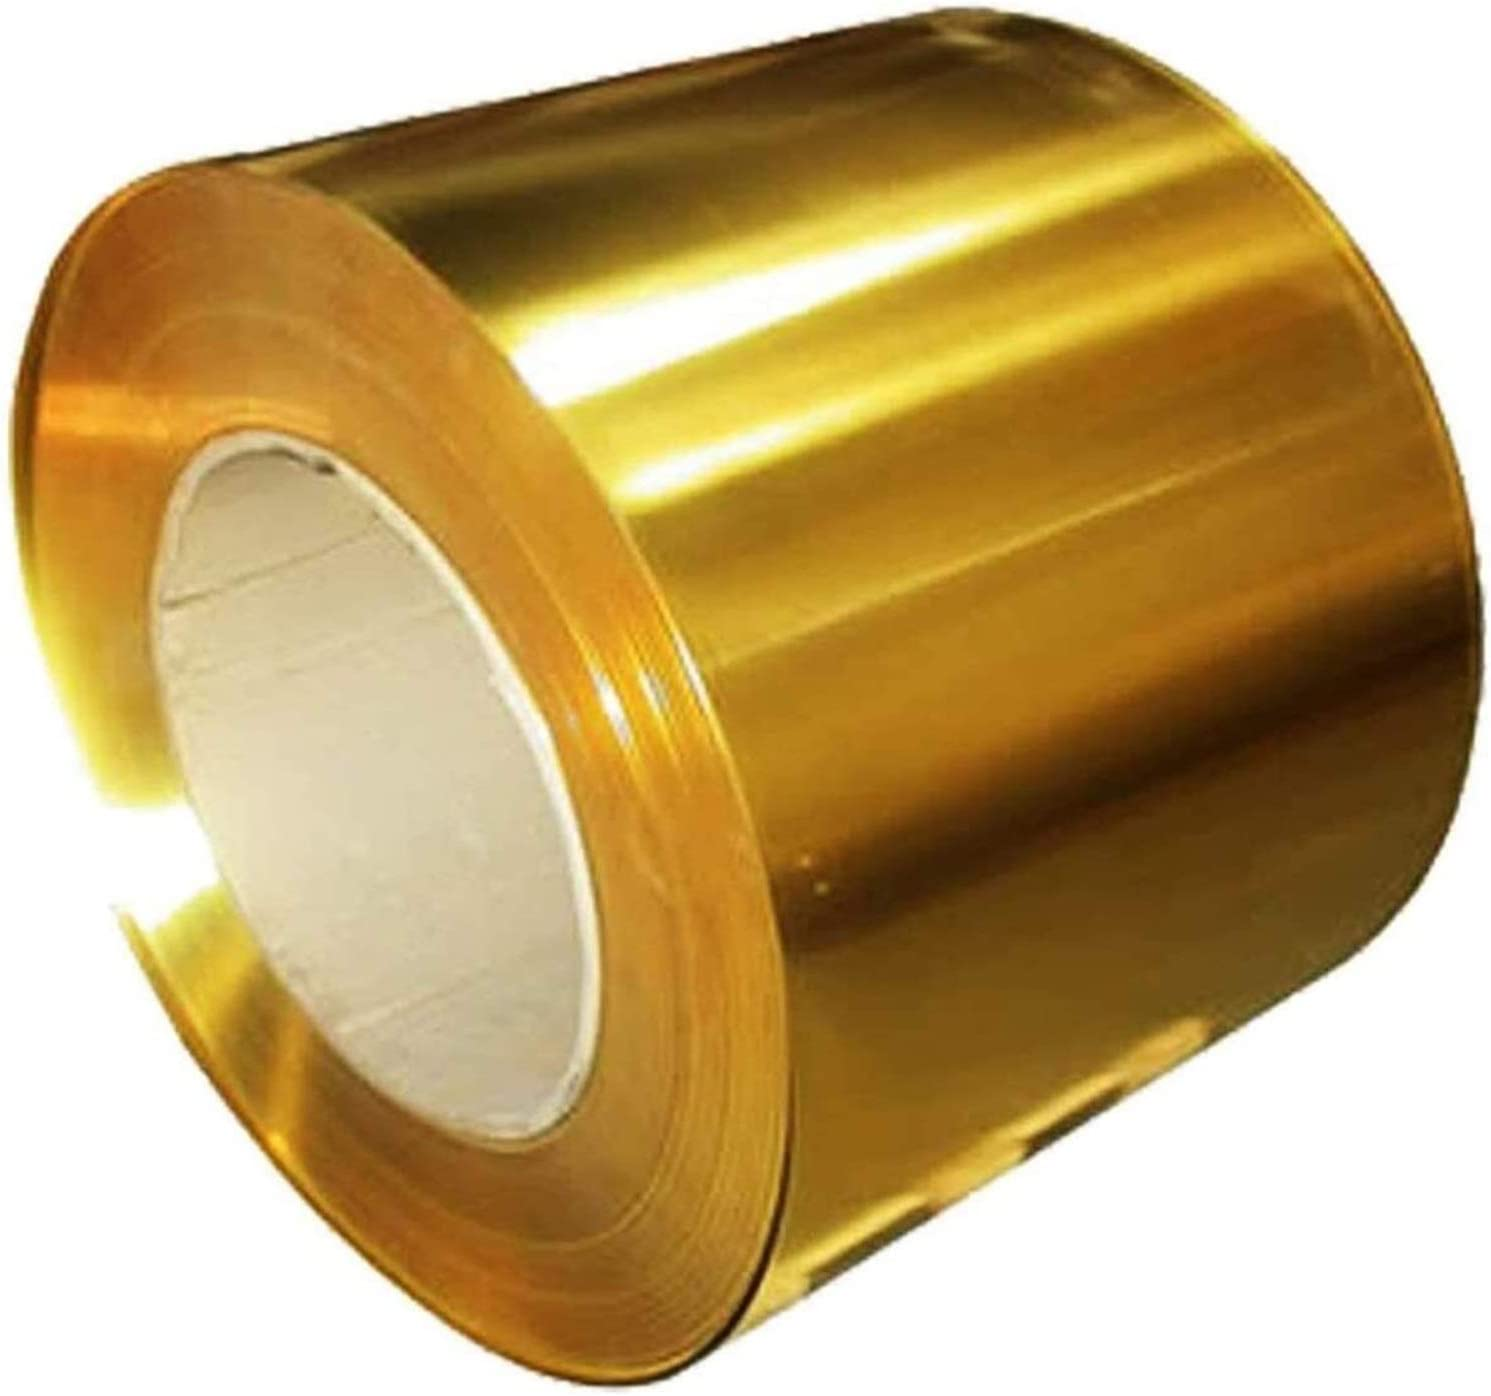 Wzqwzj List price Brass Metal Thin Sheet Foil machinability Good and OFFicial mail order Plate